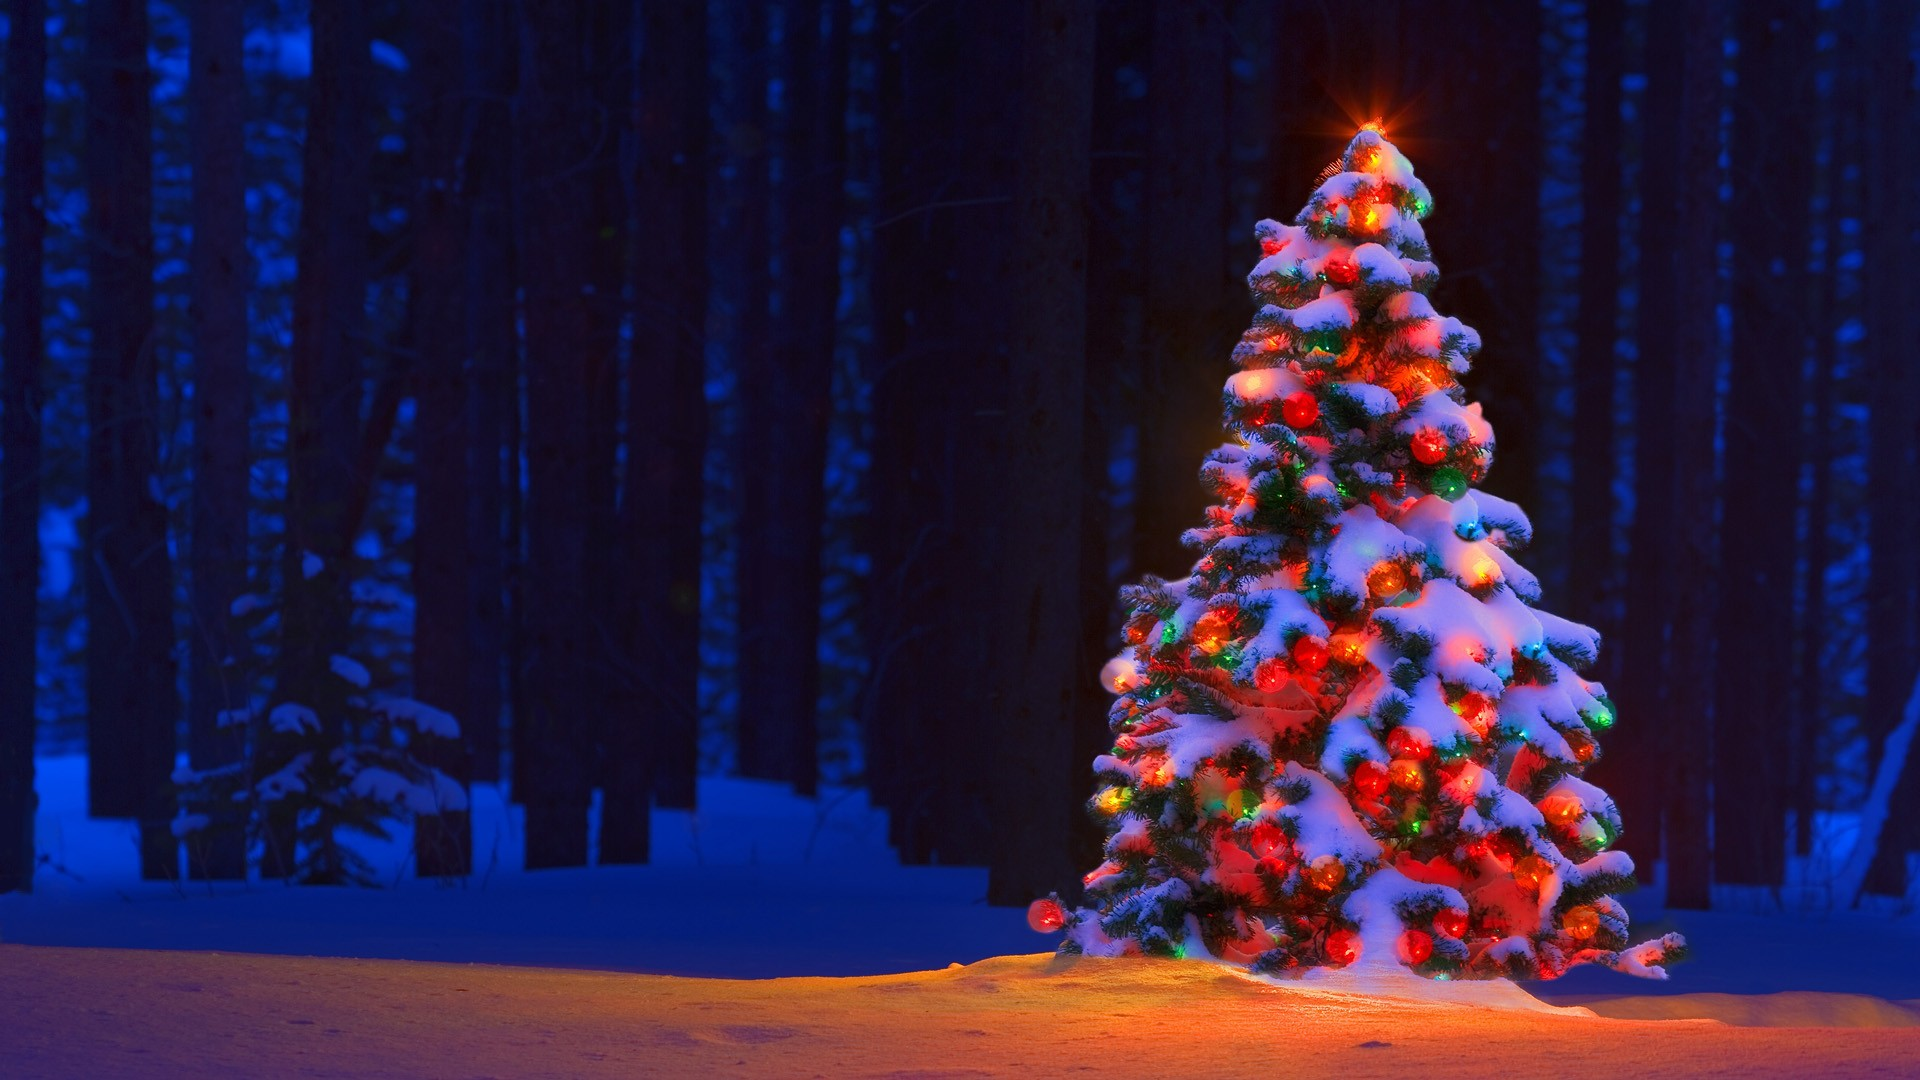 christmas tree lights bokeh forest trees snow winter color wallpaper 1920x1080